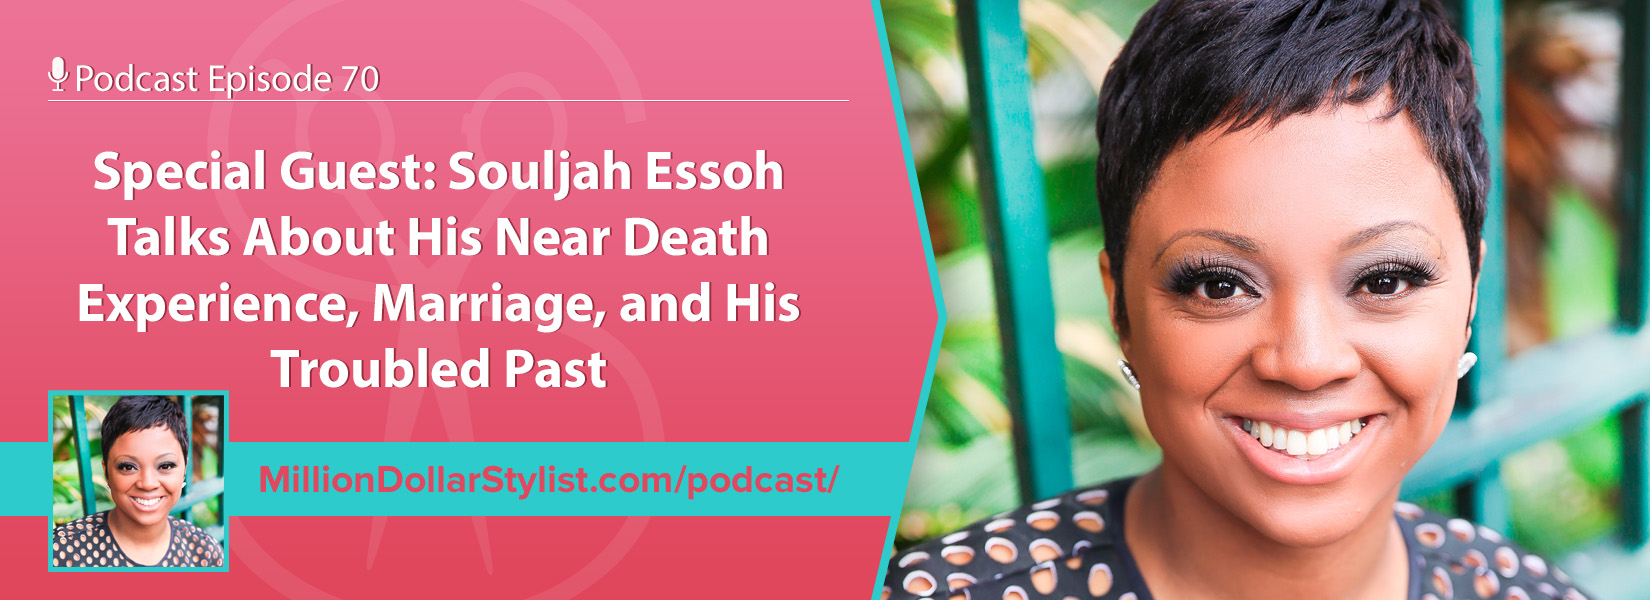 Episode 070 – Special Guest: Souljah Essoh Talks About His Near Death Experience, Marriage, & His Troubled Past 1